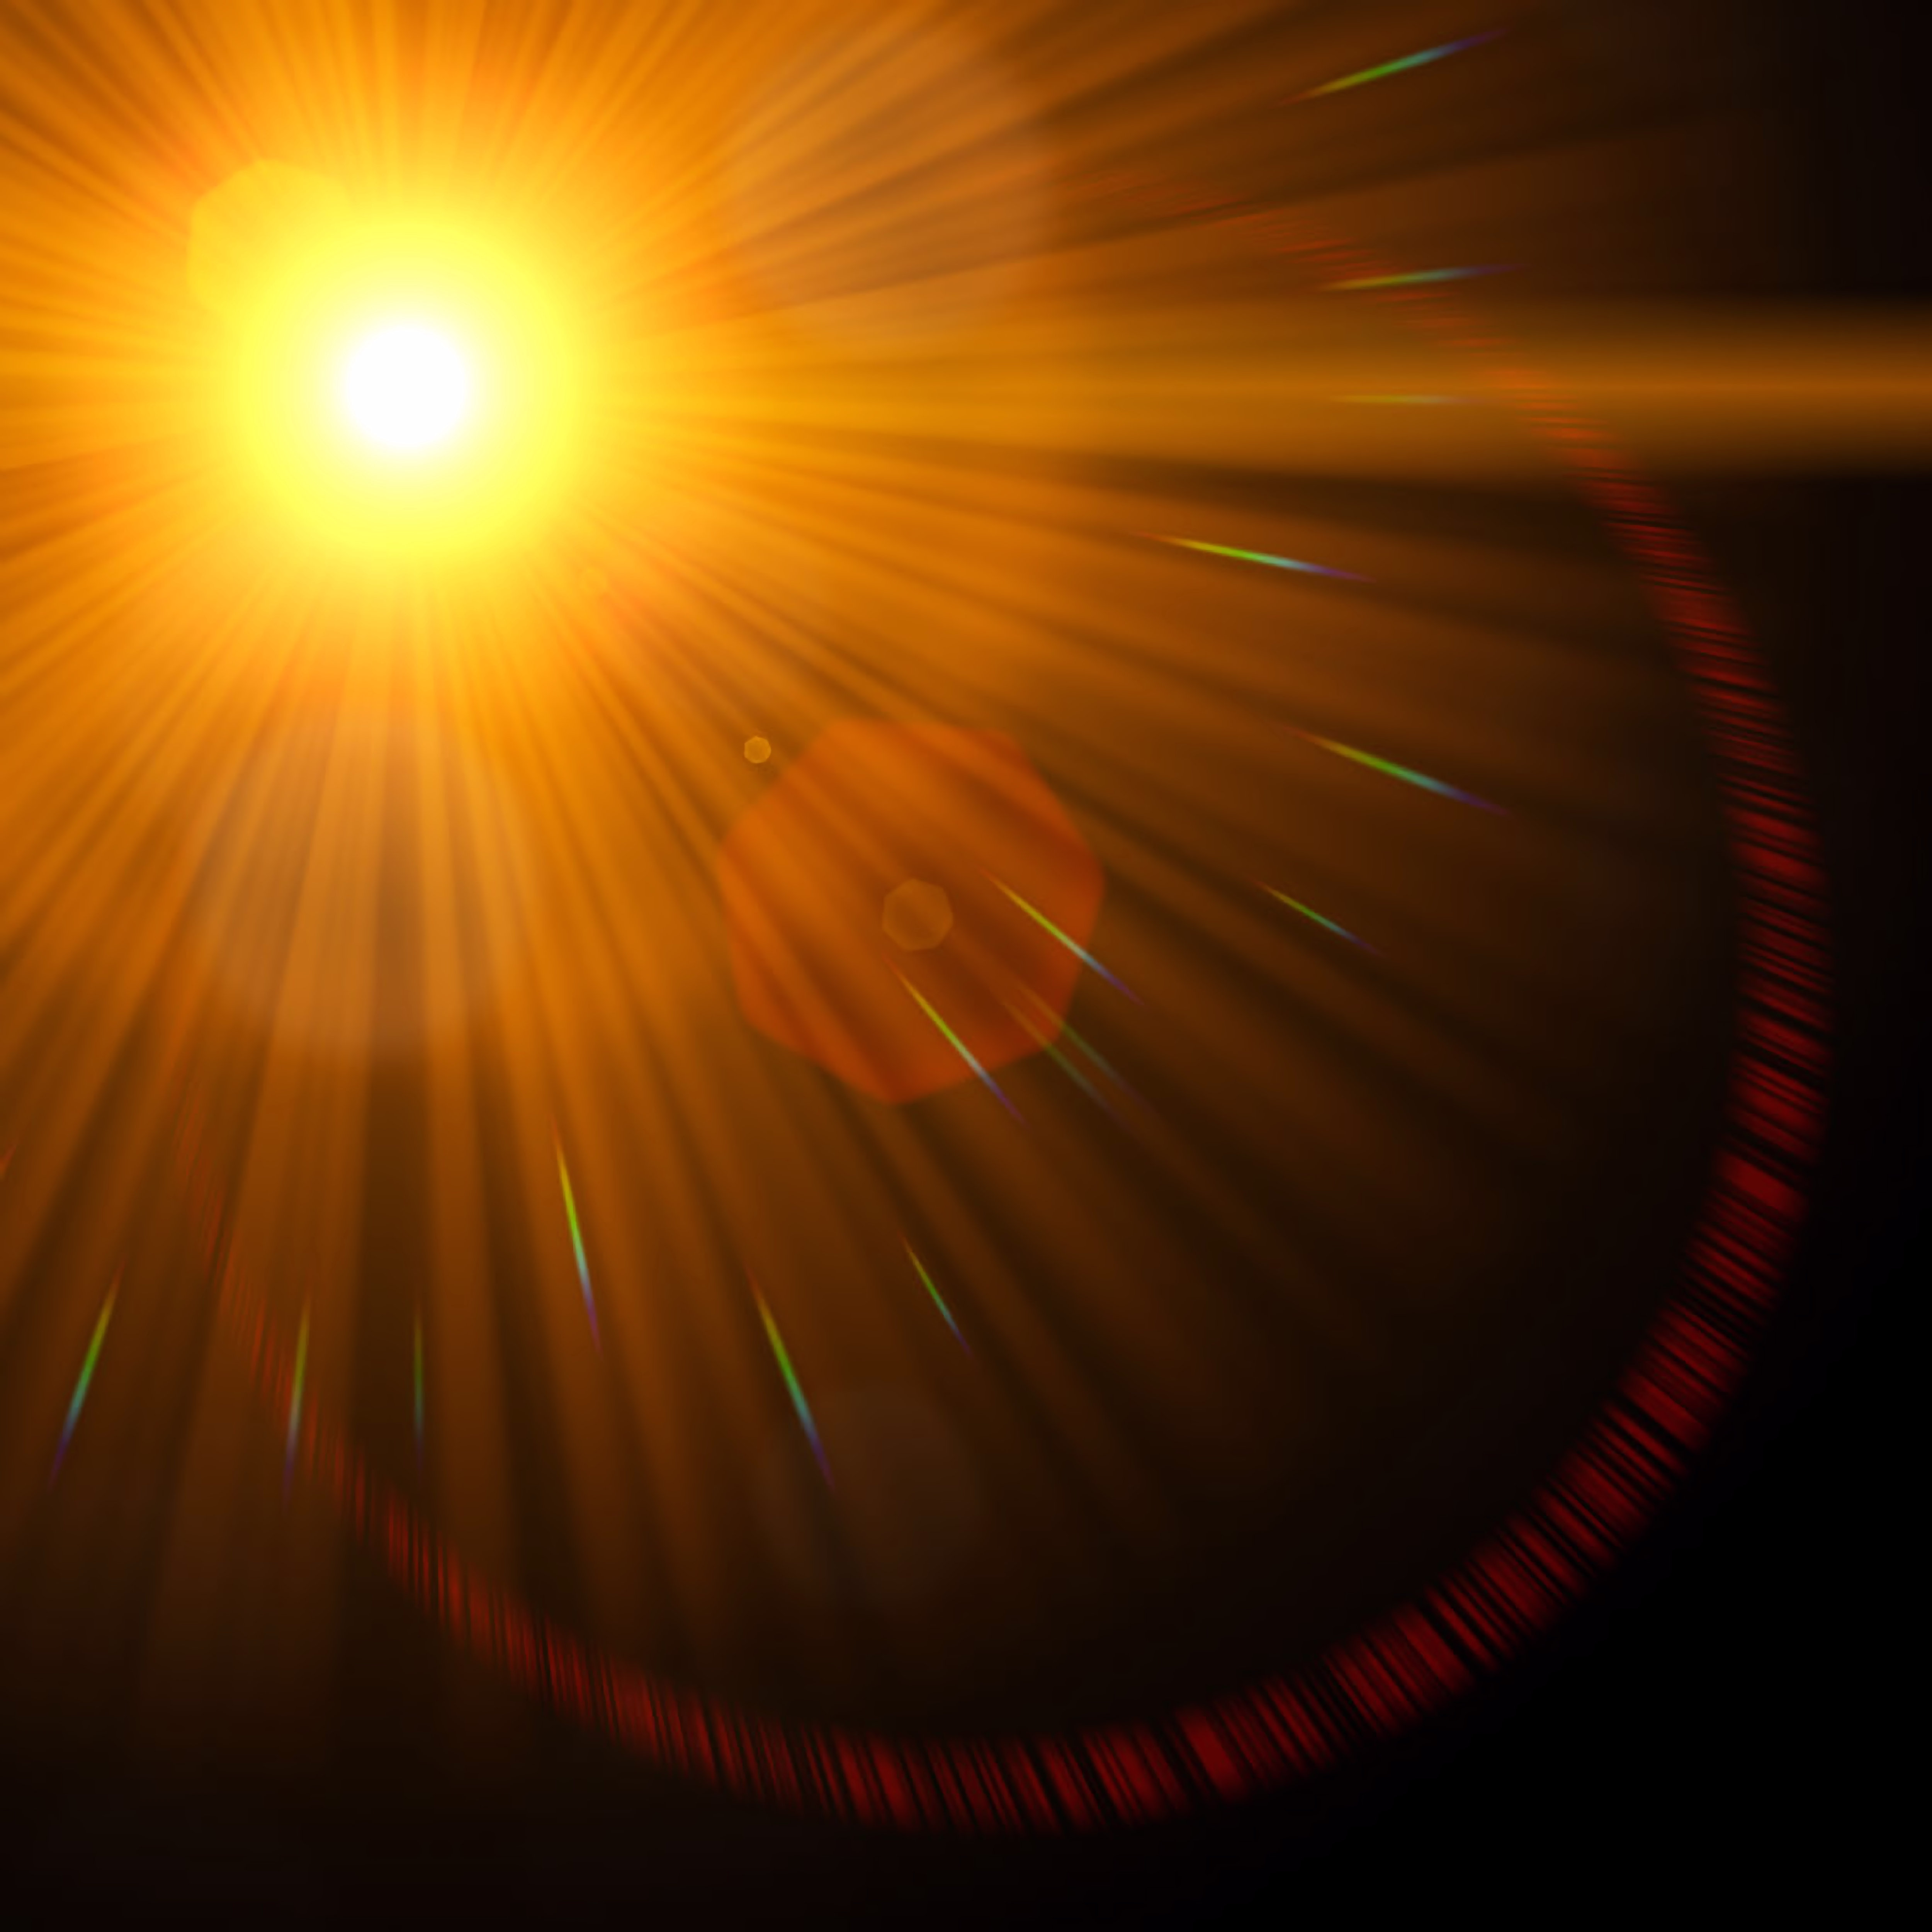 Lens Flare, Abstract, Bright, Created, Design, HQ Photo